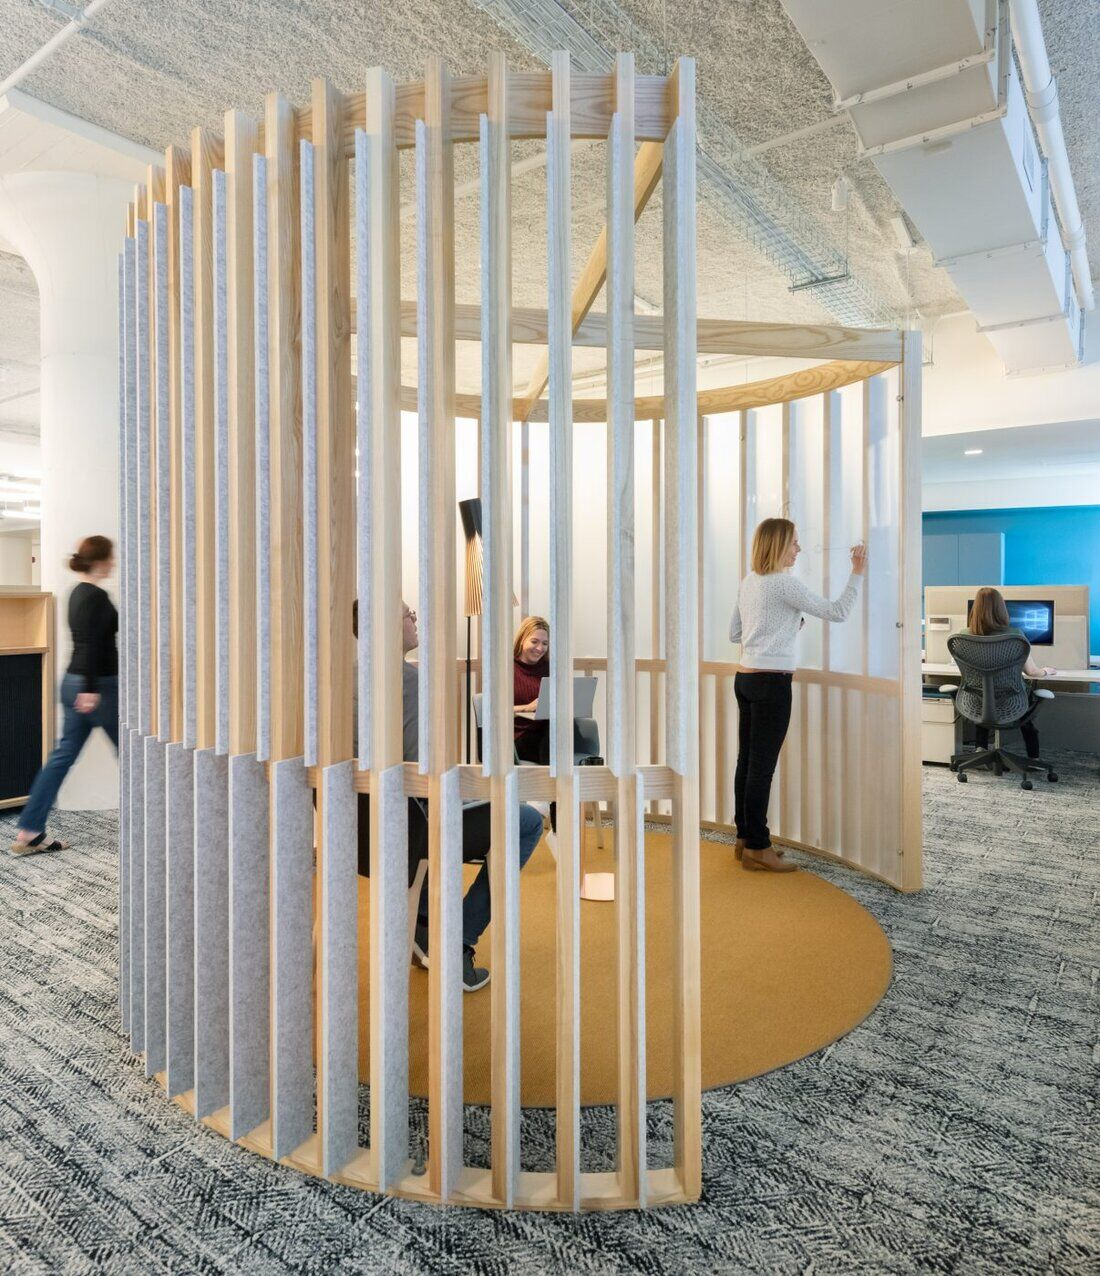 Autodesk Boston Workspace by Utile Design